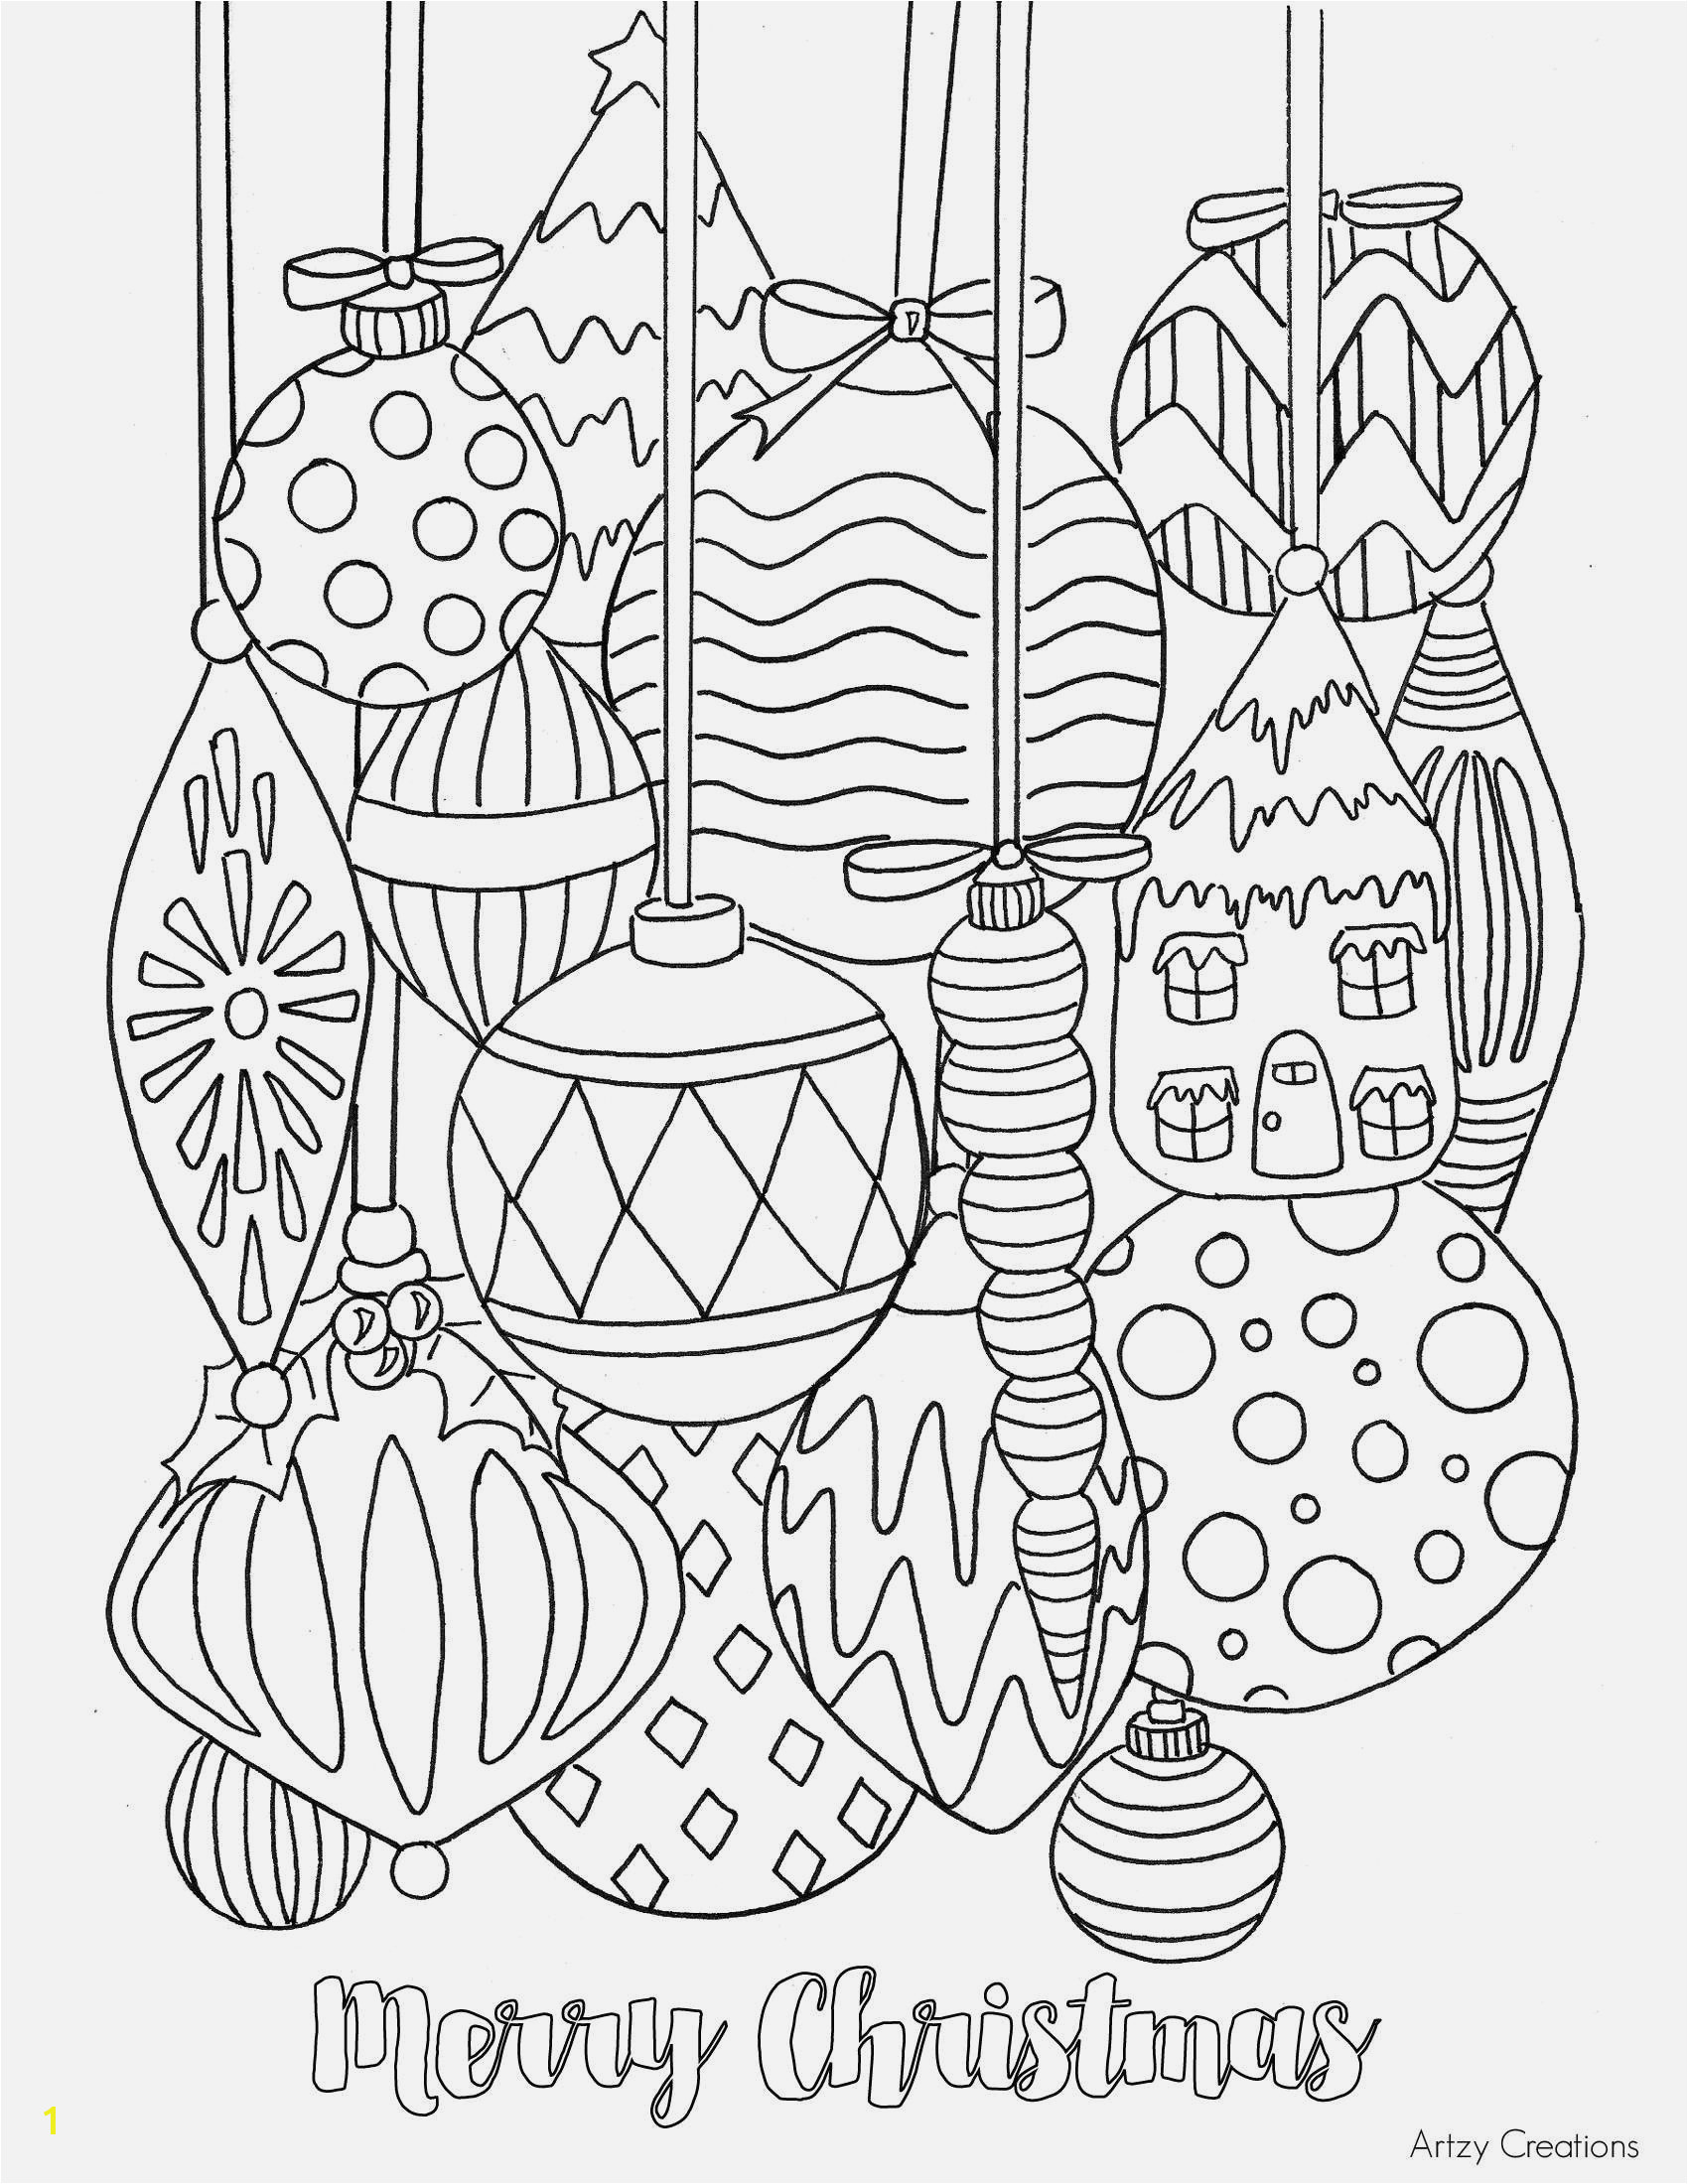 Awesome Coloring Books for Adults Printable Coloring Pages 29 Christmas Coloring Page Printable Awesome Coloring